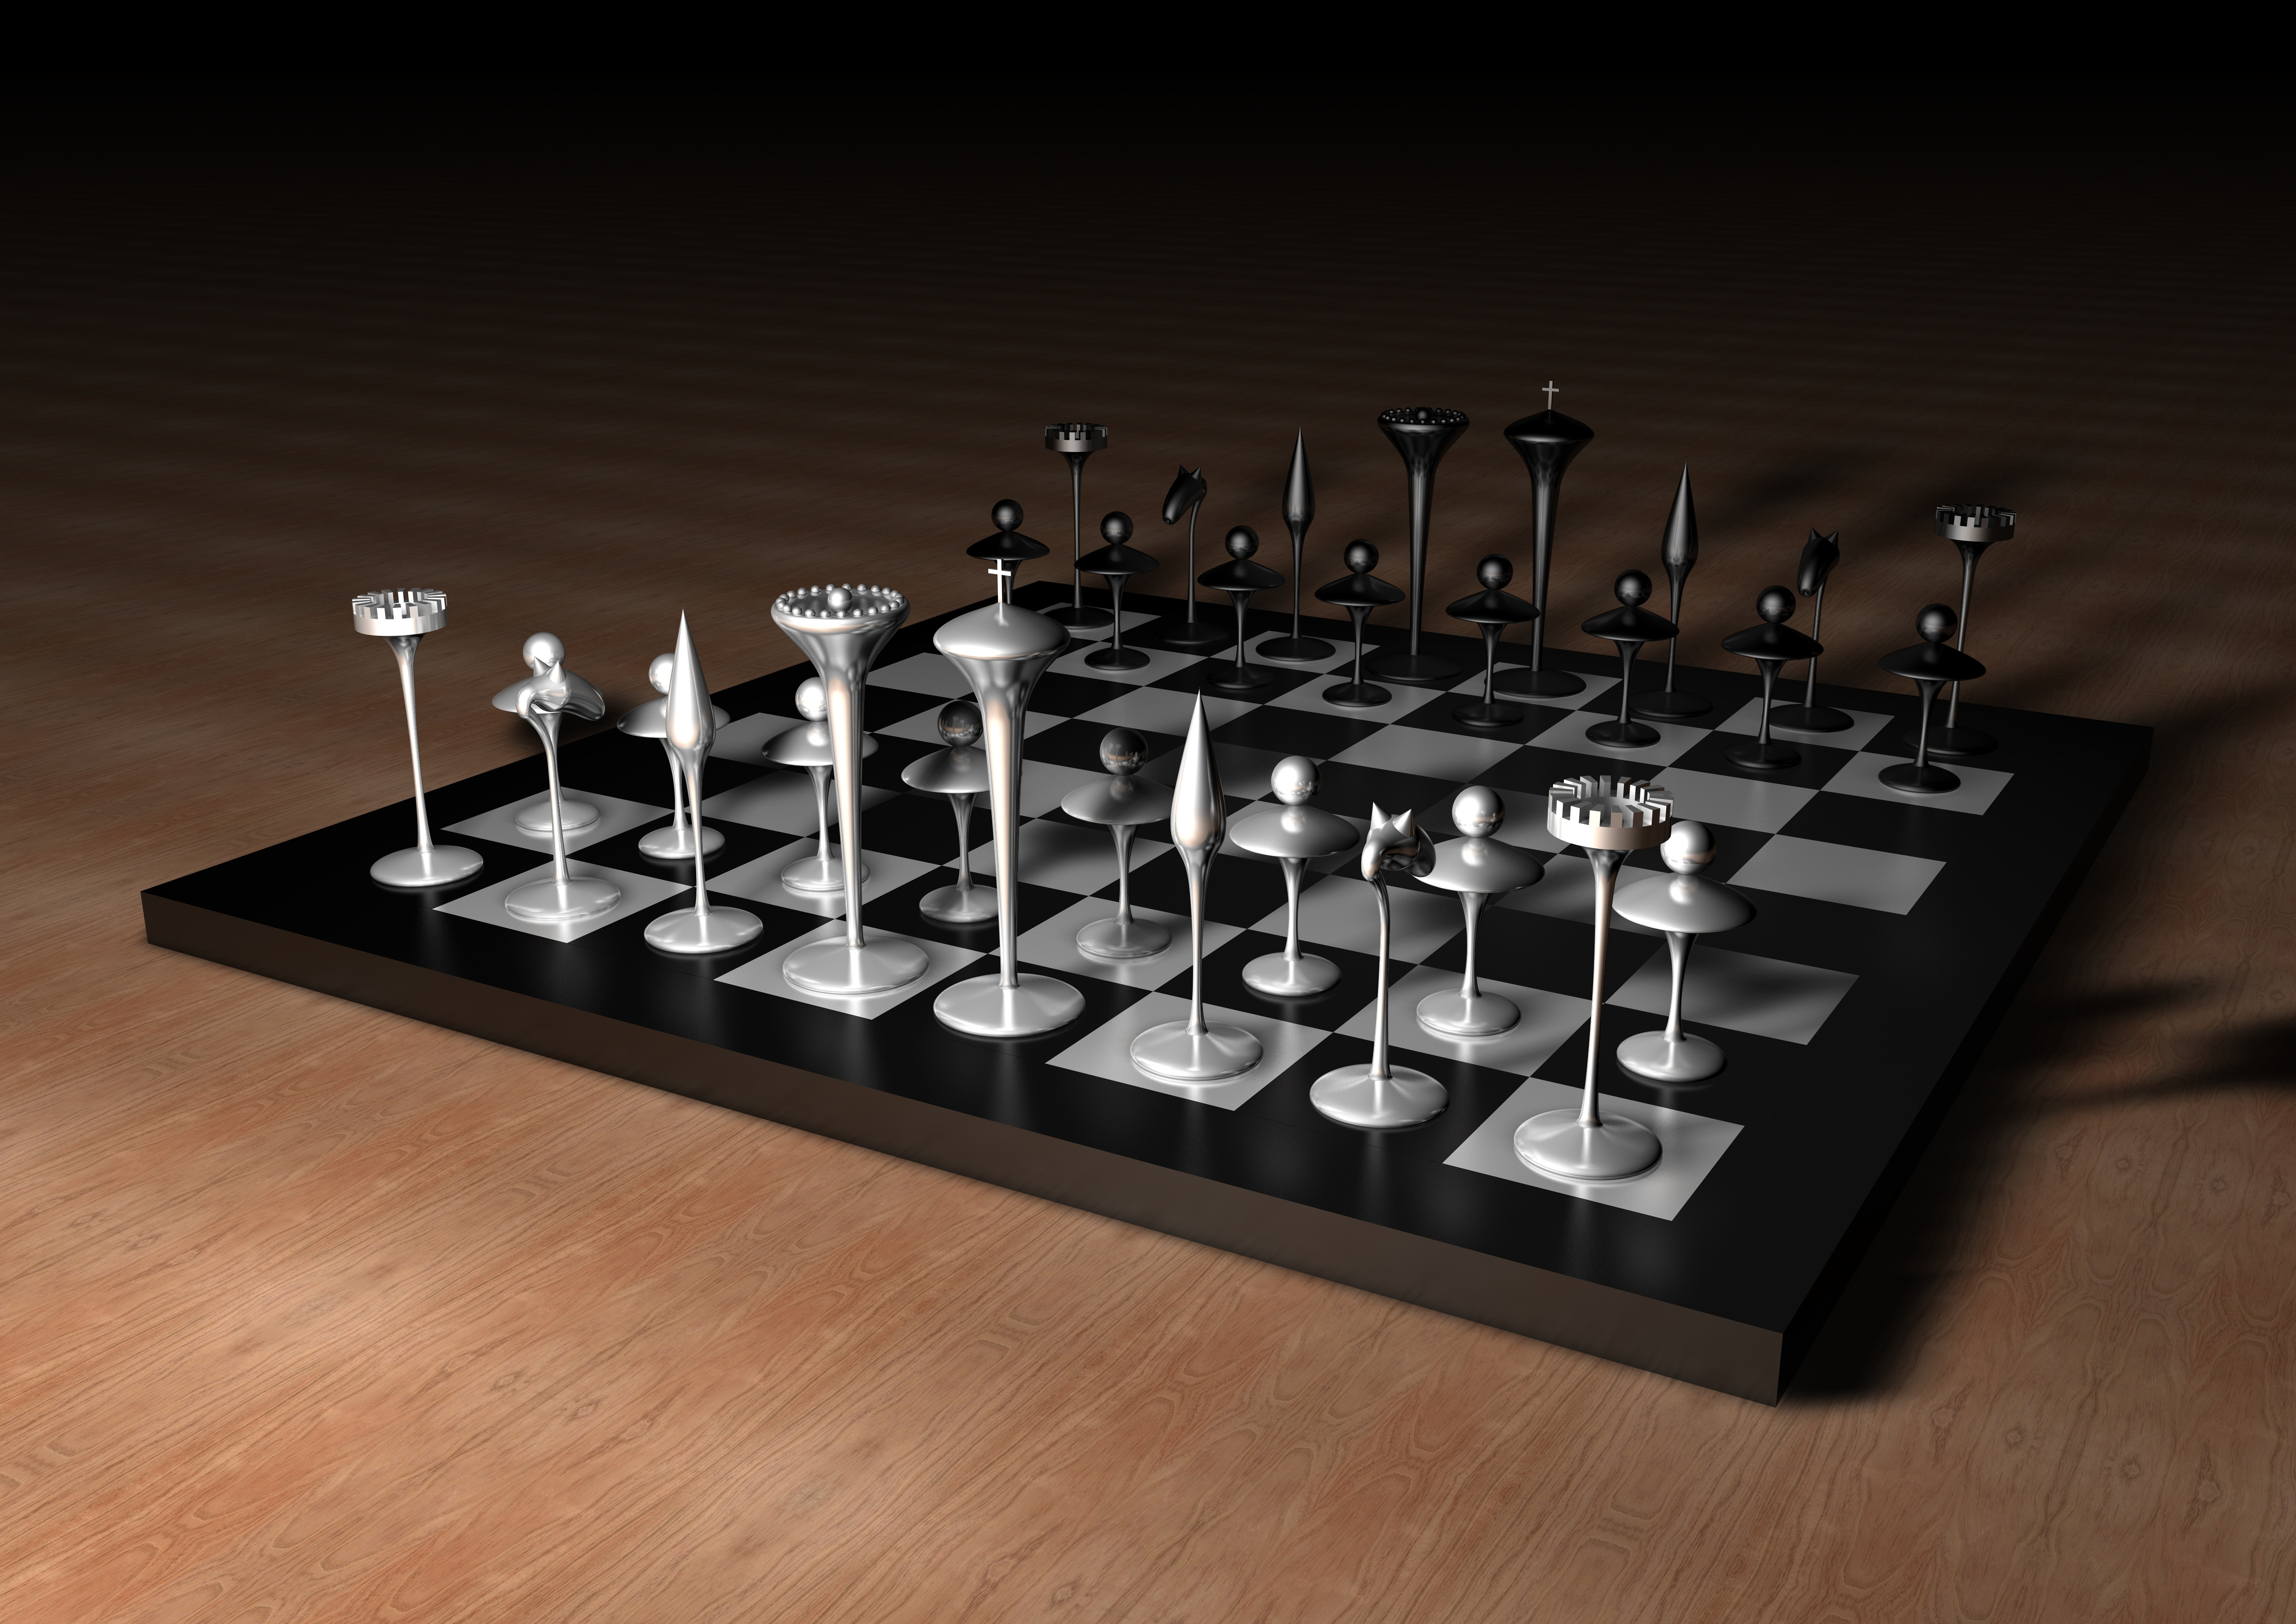 Unique Chess Sets Chess Sets Spicewood Elementary Chess Club